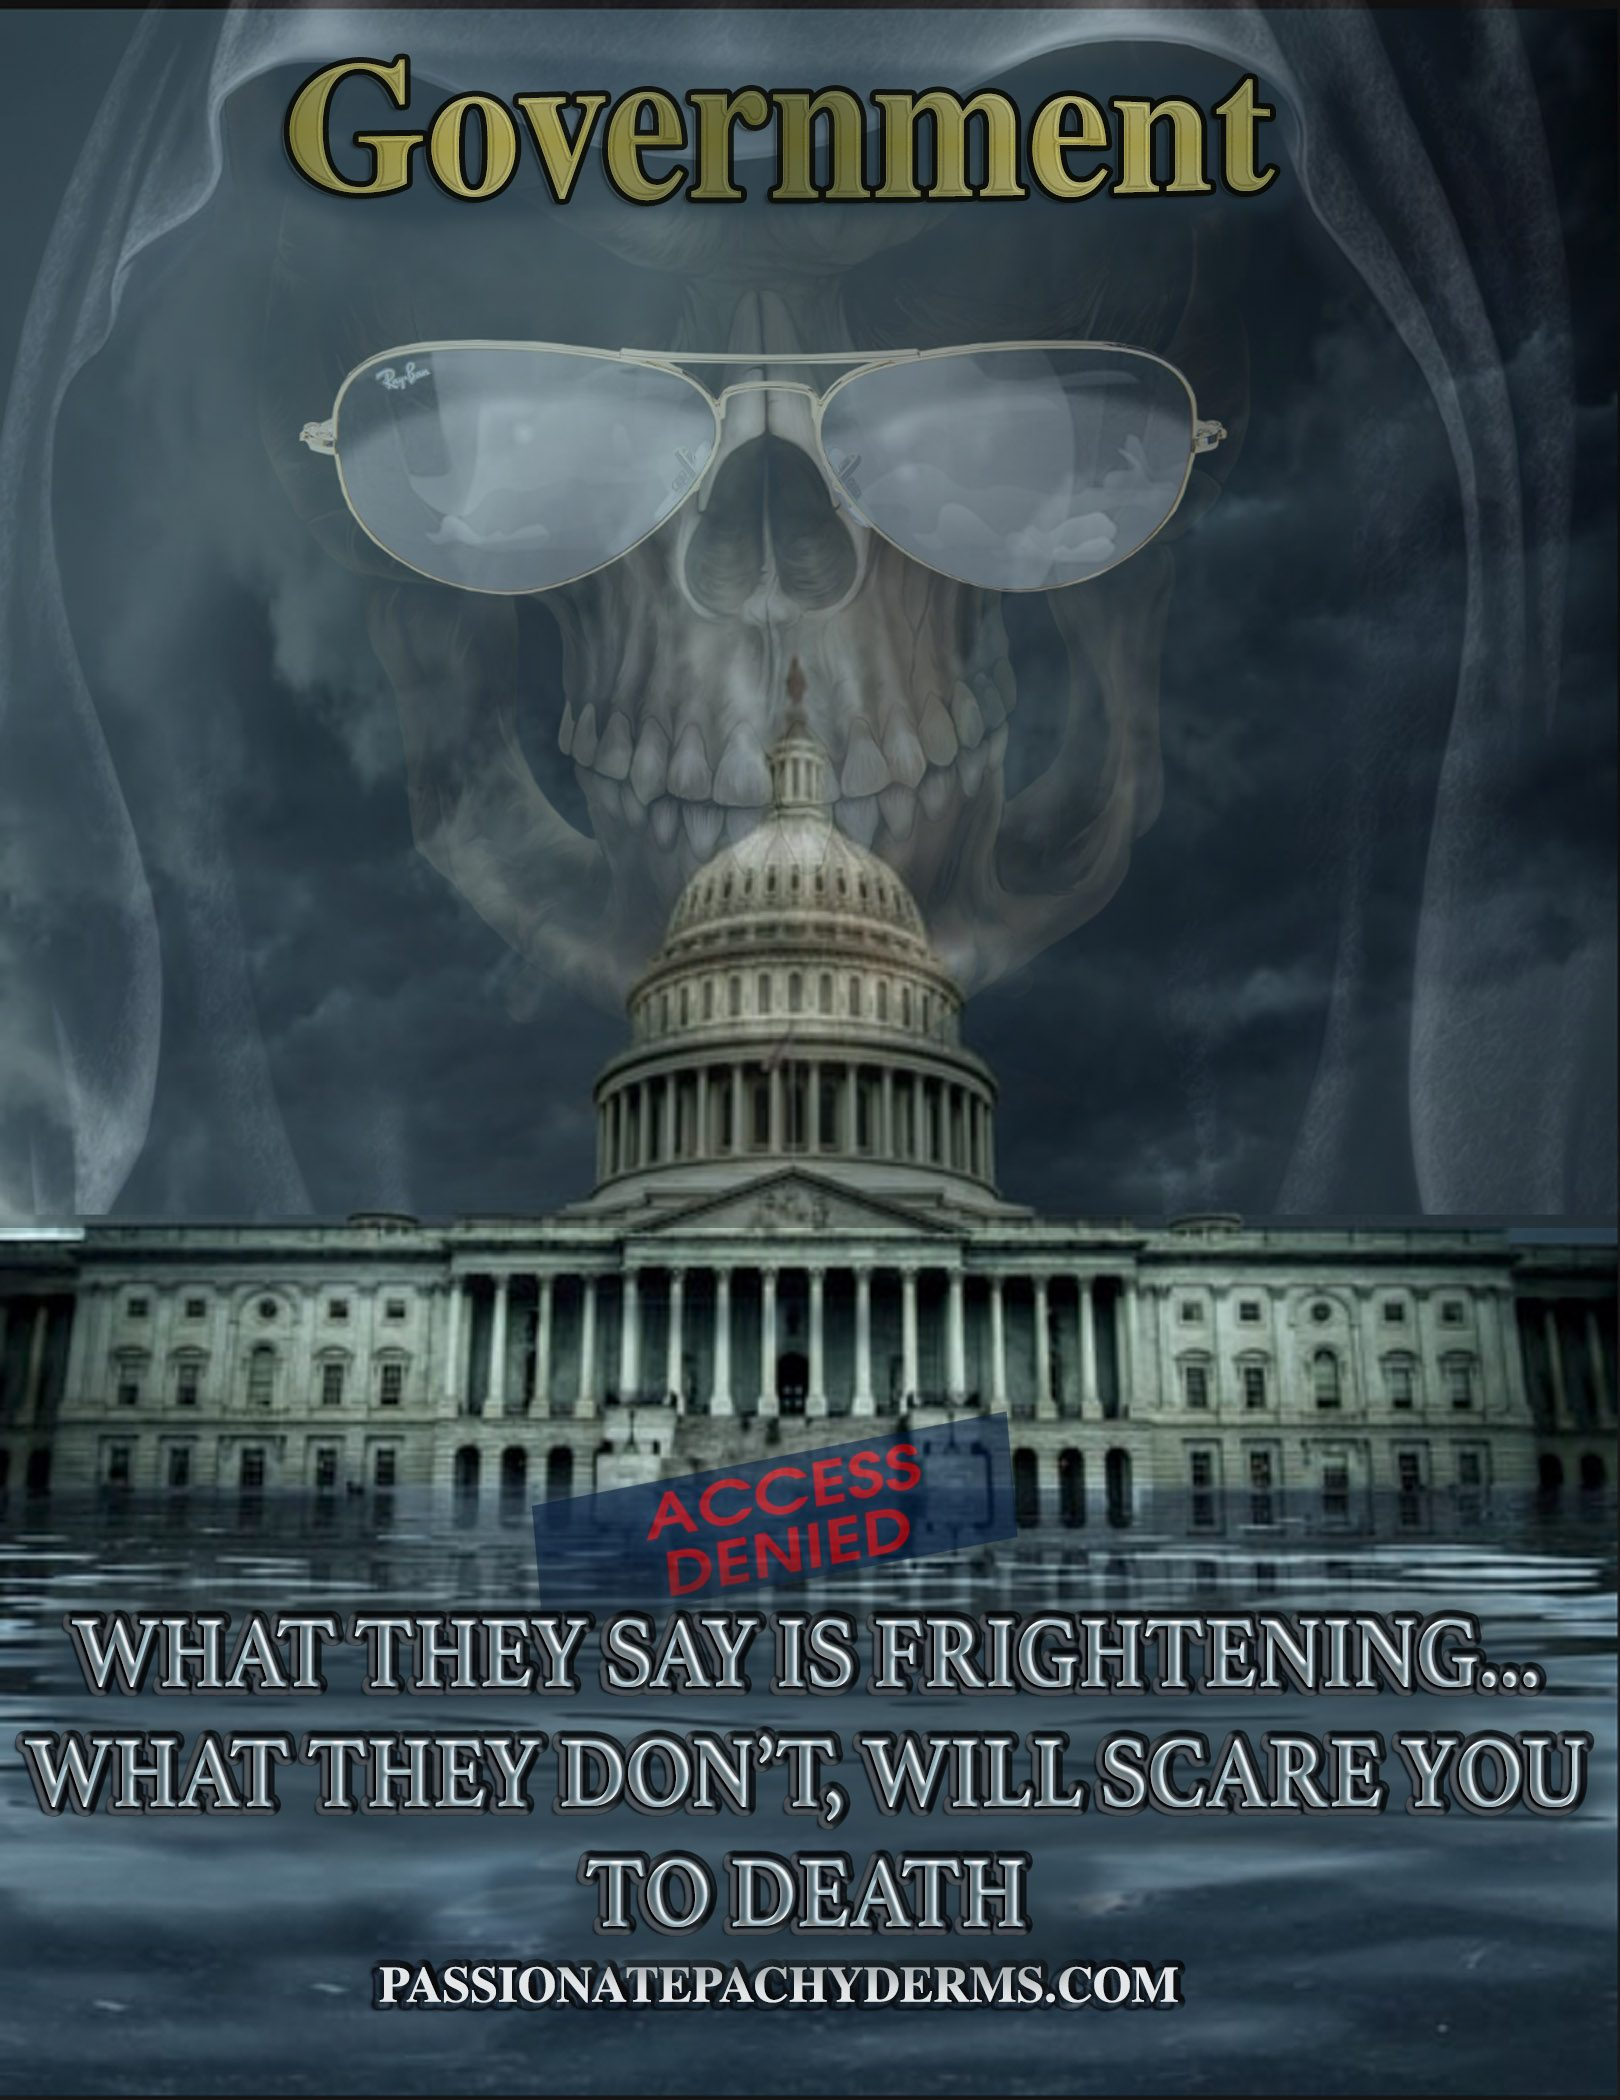 Government What They Tell You Is Frightening What They Don't, Will Scare You To Death ~ The US Military ~ 93 Views